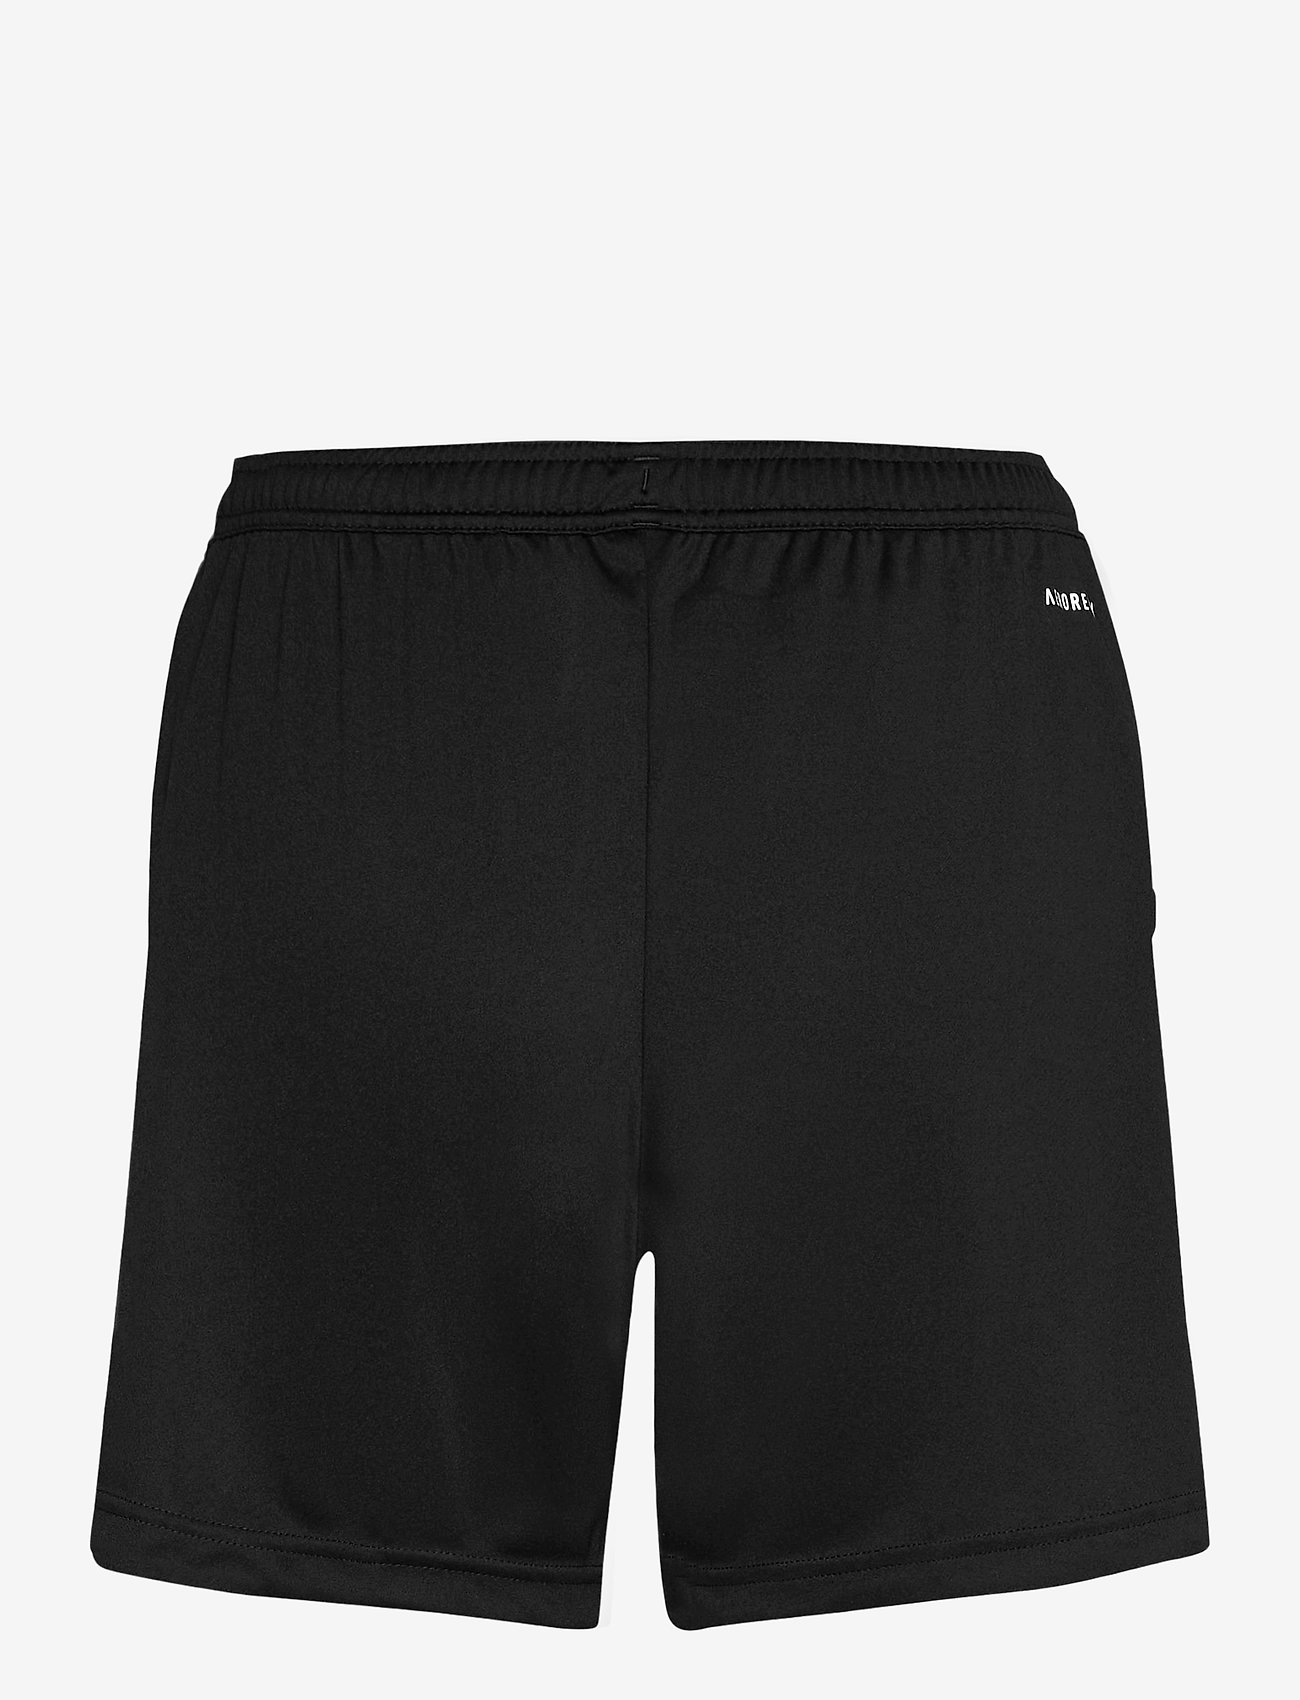 adidas Performance - Team 19 Shorts W - træningsshorts - black/white - 1